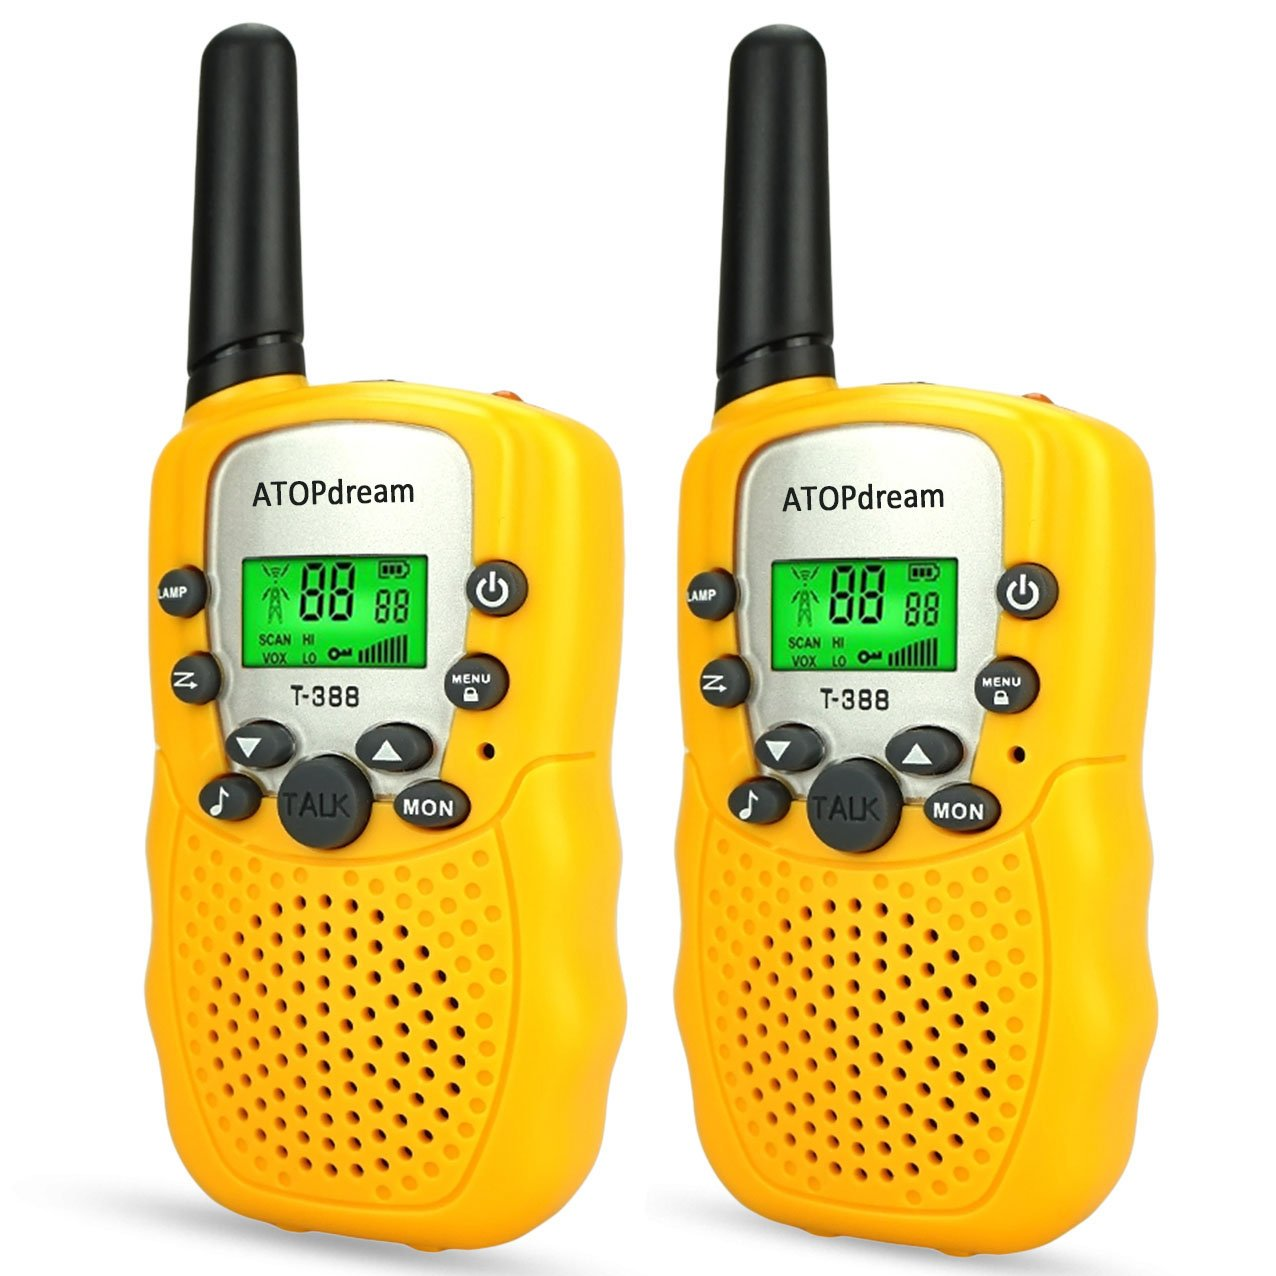 Toys for 4-8 Year Old Boys, TOG Gift Walkie Talkies for Kids Toys for 8-12 Year Old Boys Toys for 3-12 Year Old Girls Gifts for Teen Girls&Boys Yellow TGDJ03